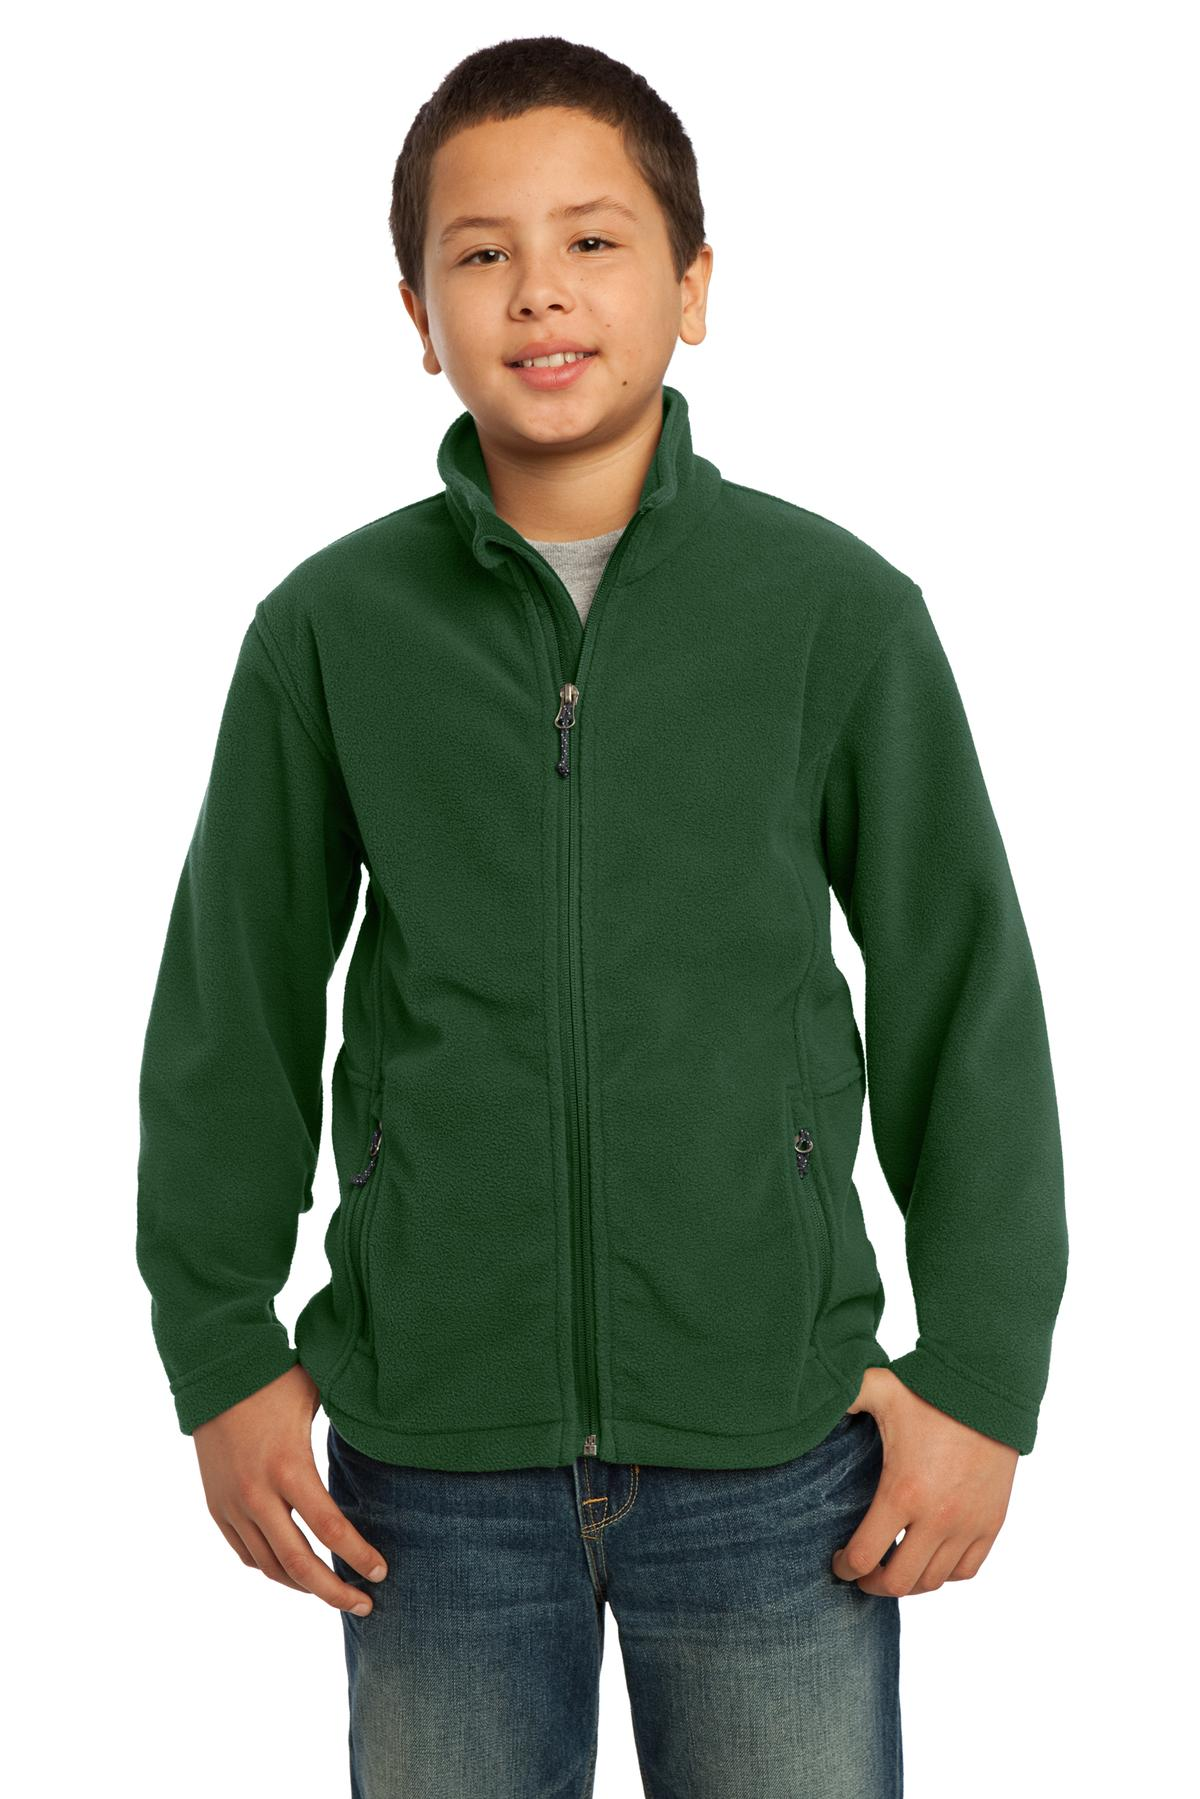 Port Authority ®  Youth Value Fleece Jacket. Y217 - Forest Green